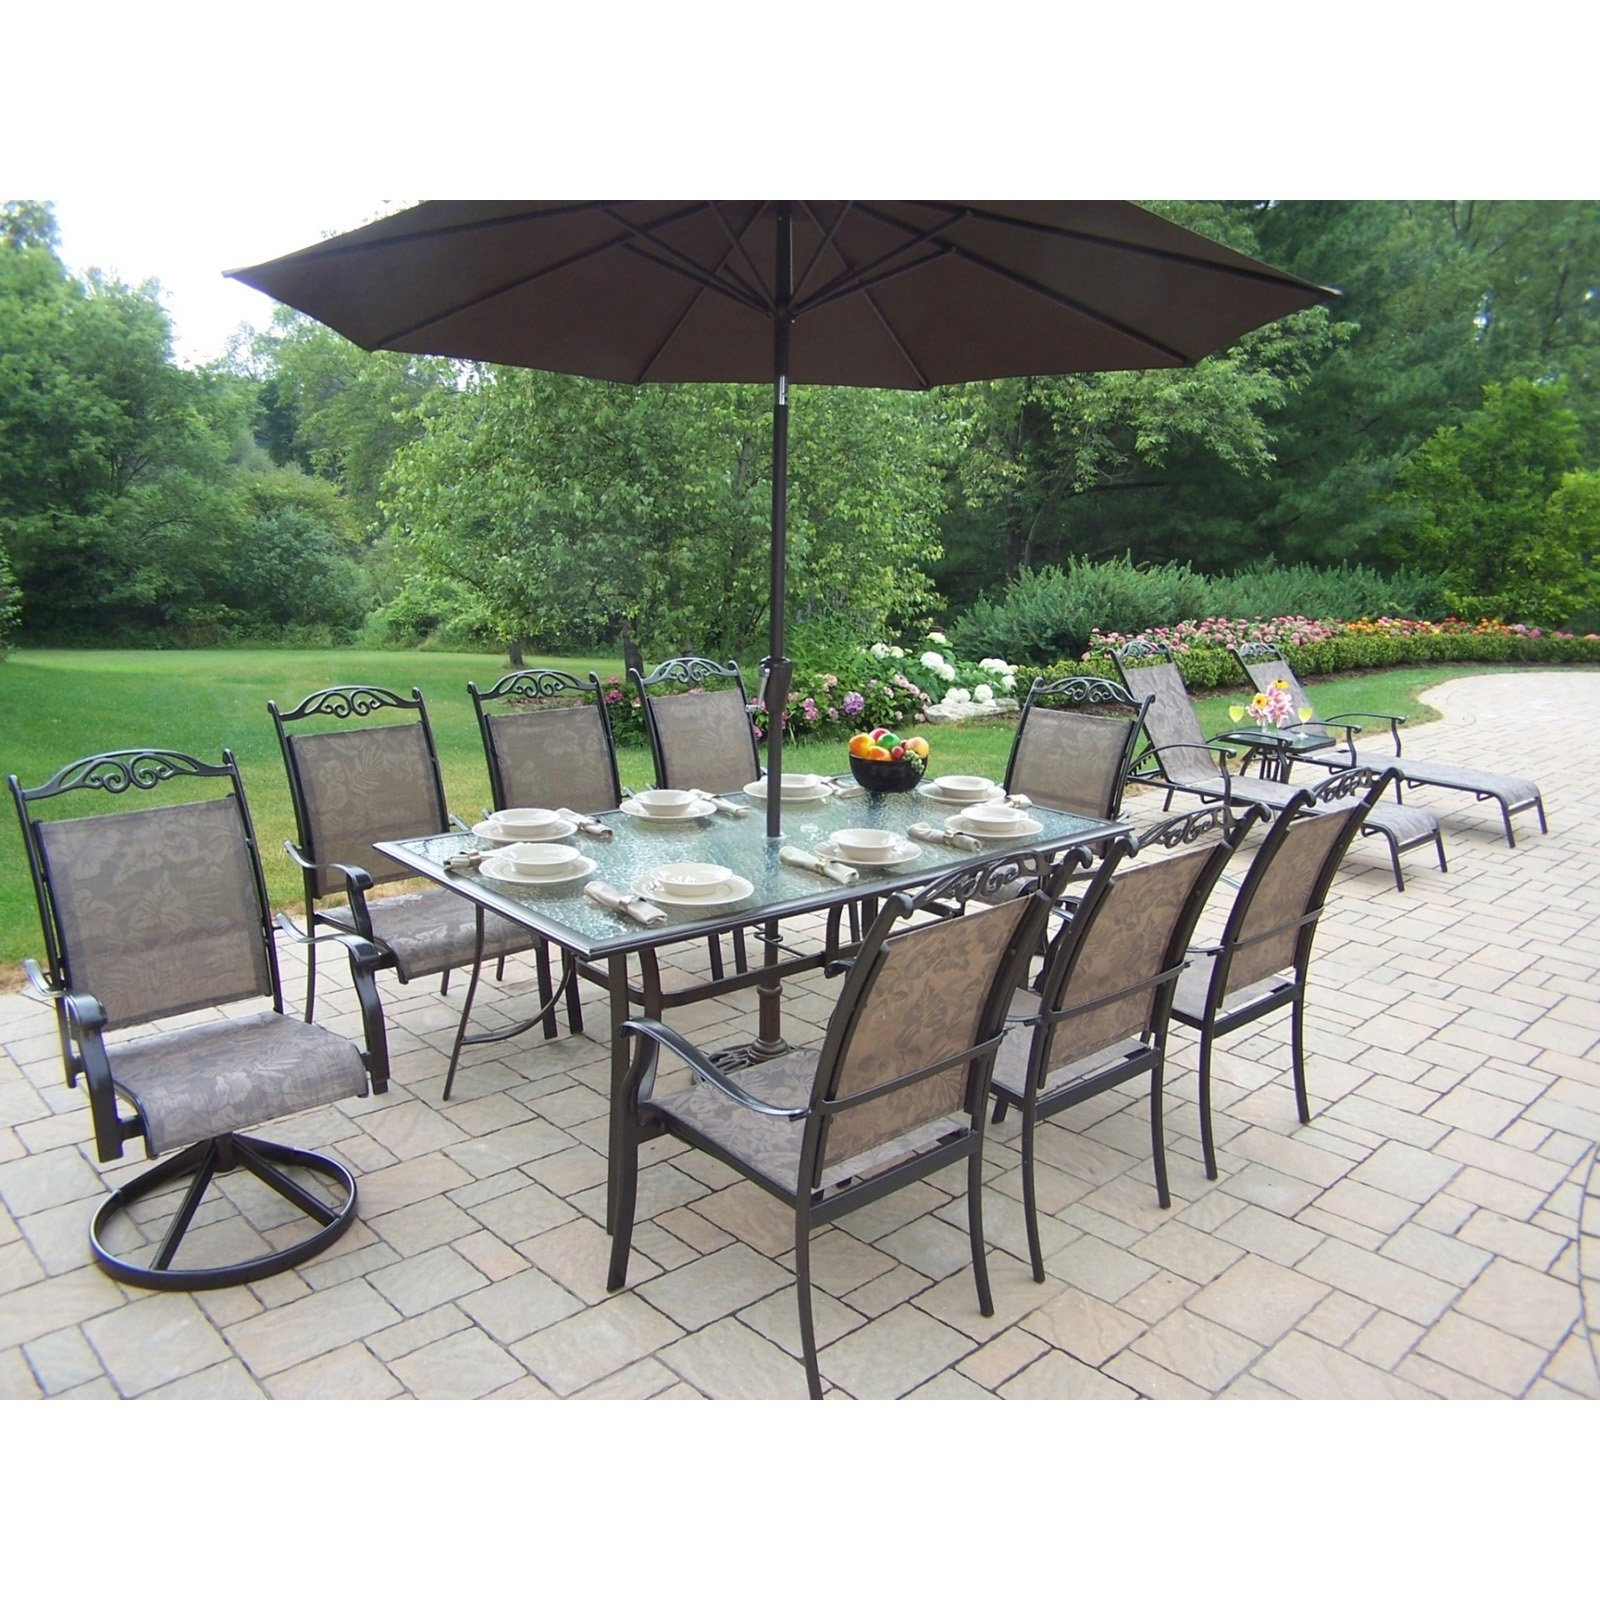 Patio Dining Sets With Umbrellas Pertaining To Favorite Patio Furniture Walmart Patio Furniture Sets Patio Dining Luxury (Gallery 5 of 20)